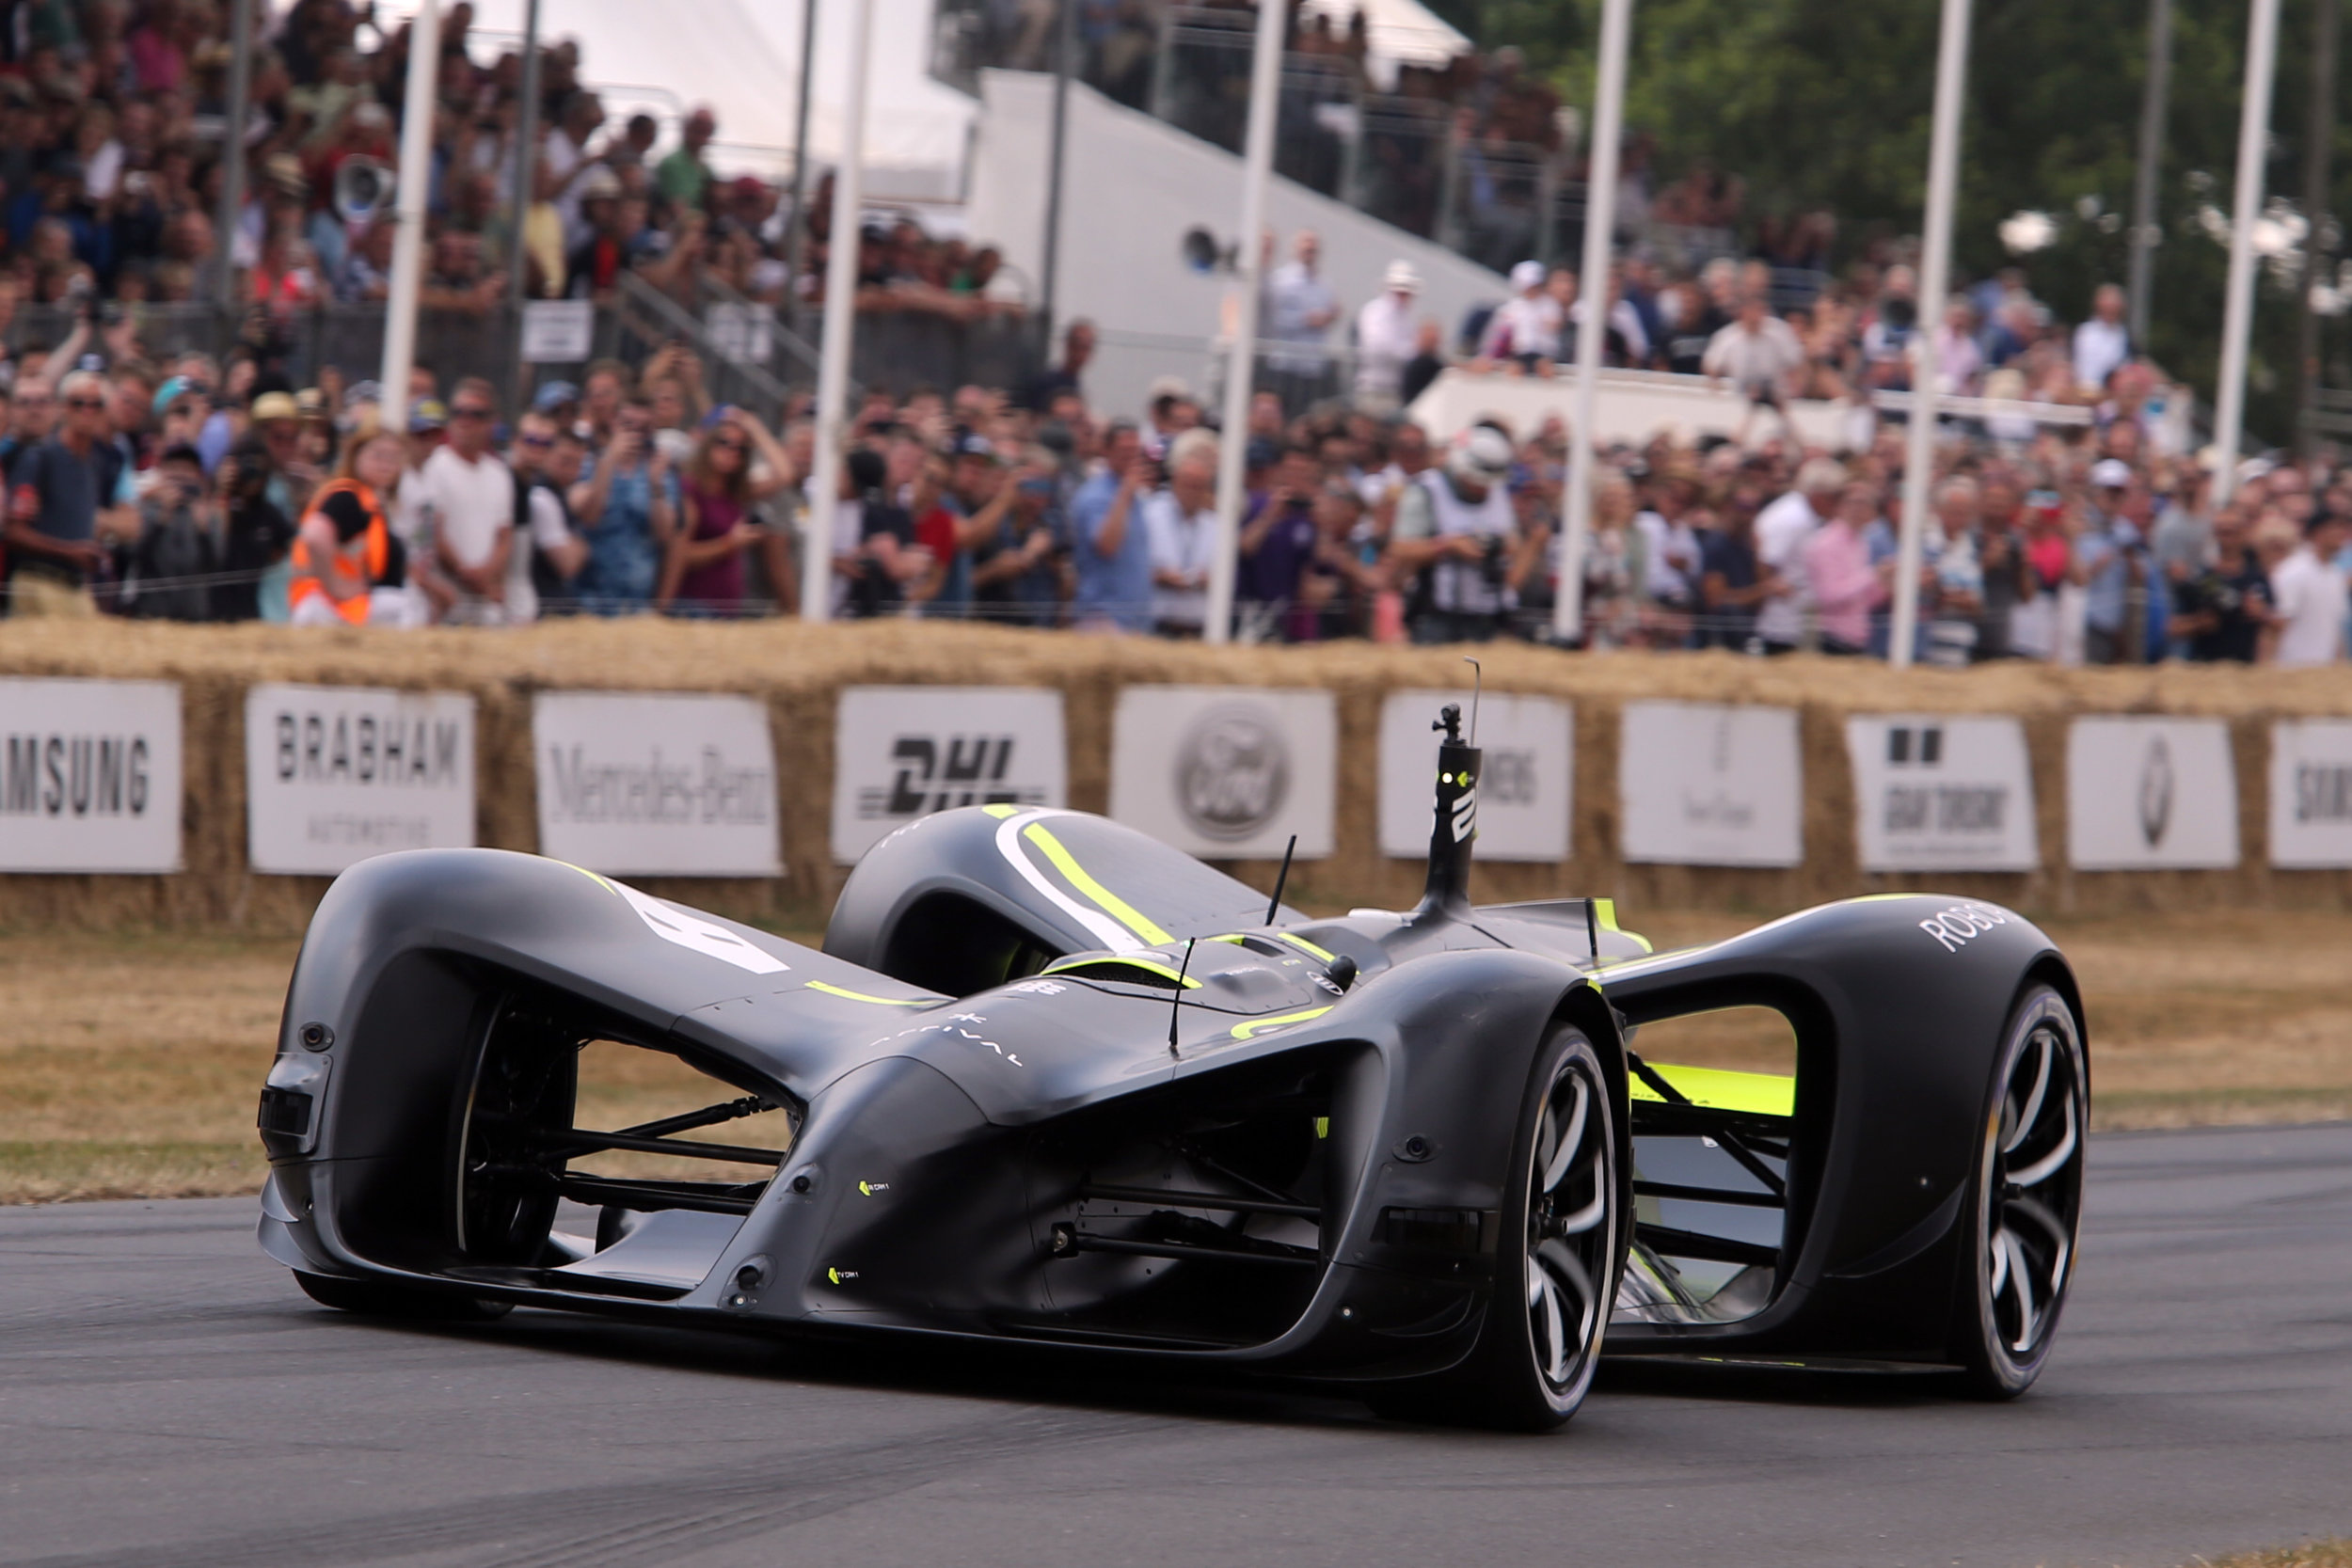 Driverless-race-cars-have-already-been-tested-Roborace-Goodwood-Fesatival-of-Speed.jpg